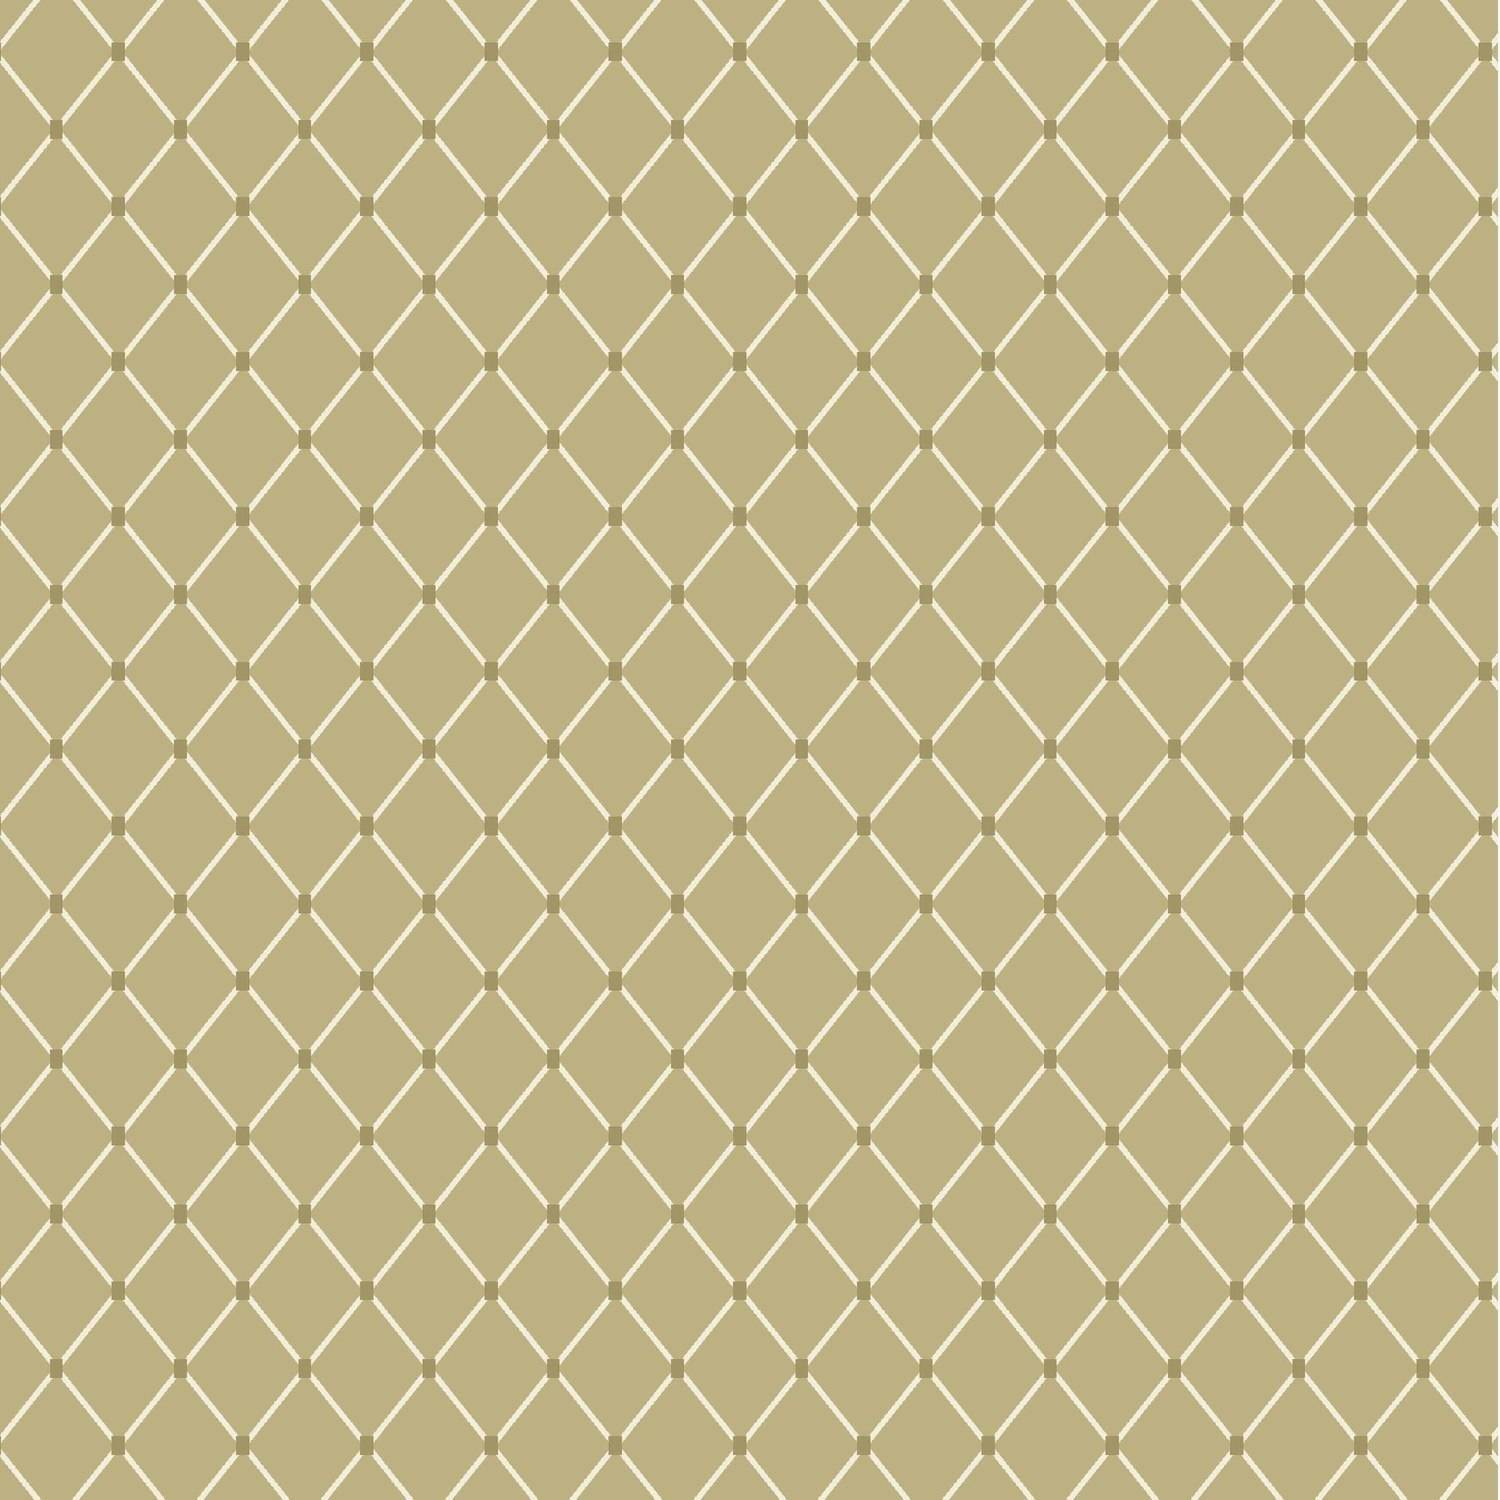 Waverly Inspirations 100% Cotton duck fabric, Quilting fabric, Home Decor